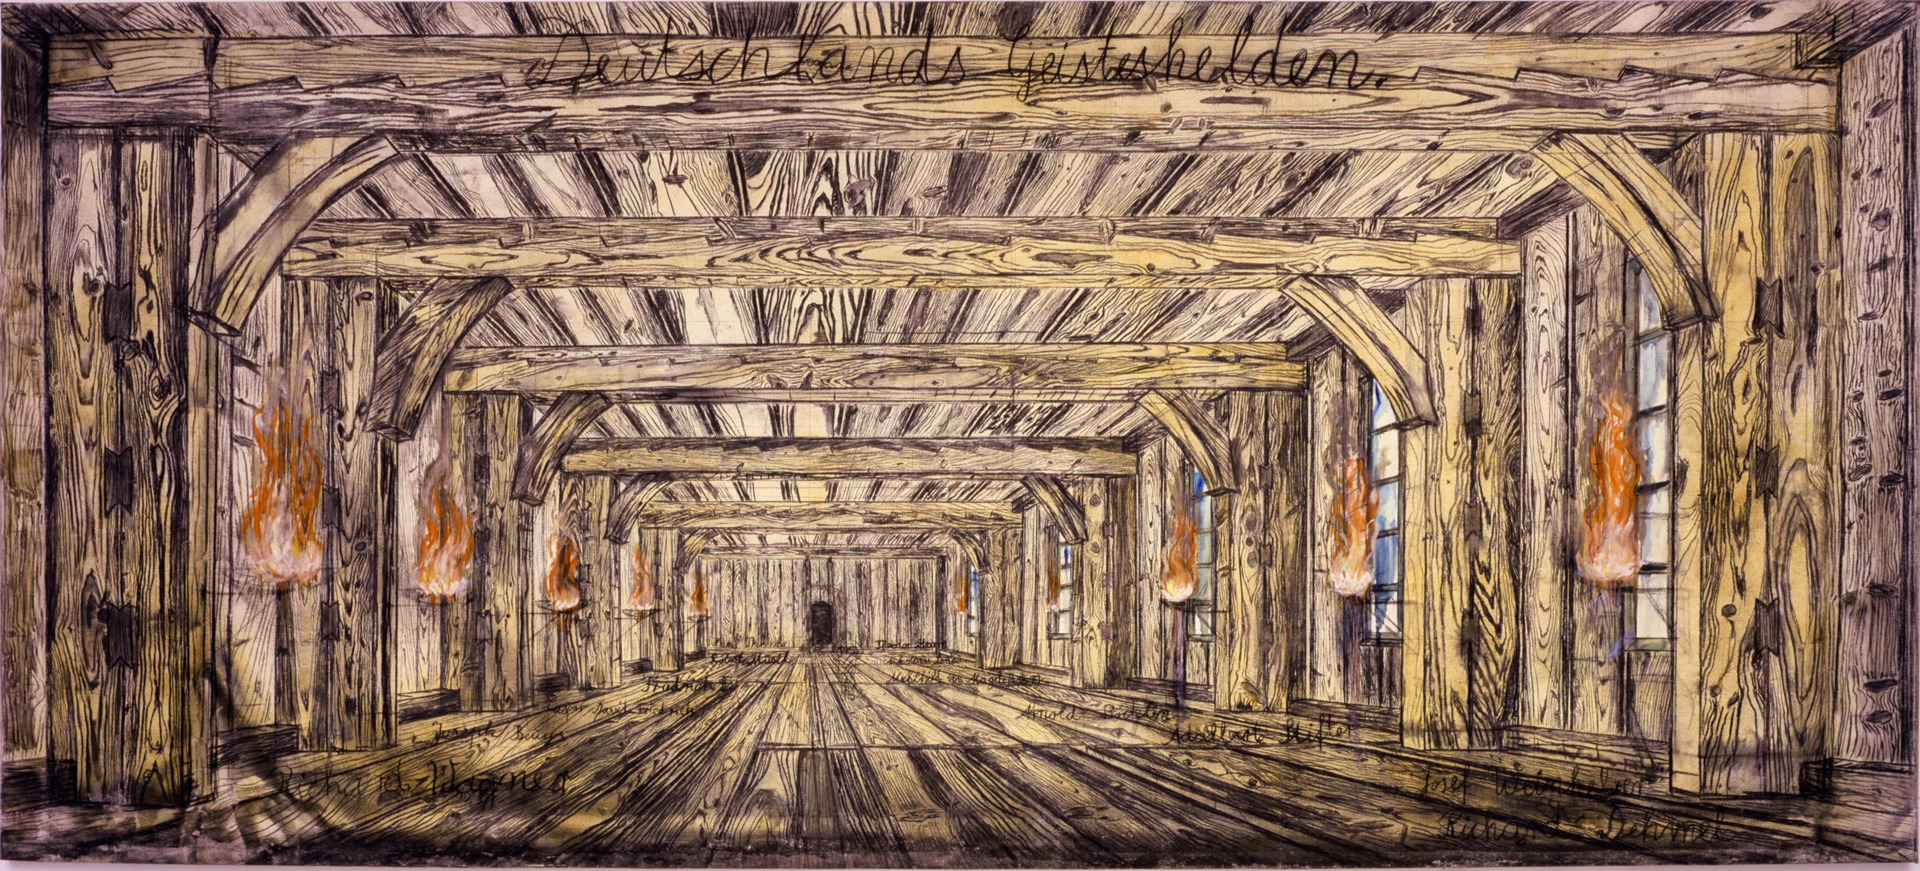 Anselm Kiefer - Deutschlands Geisteshelden, 1973, oil and charcoal on burlap mounted on canvas